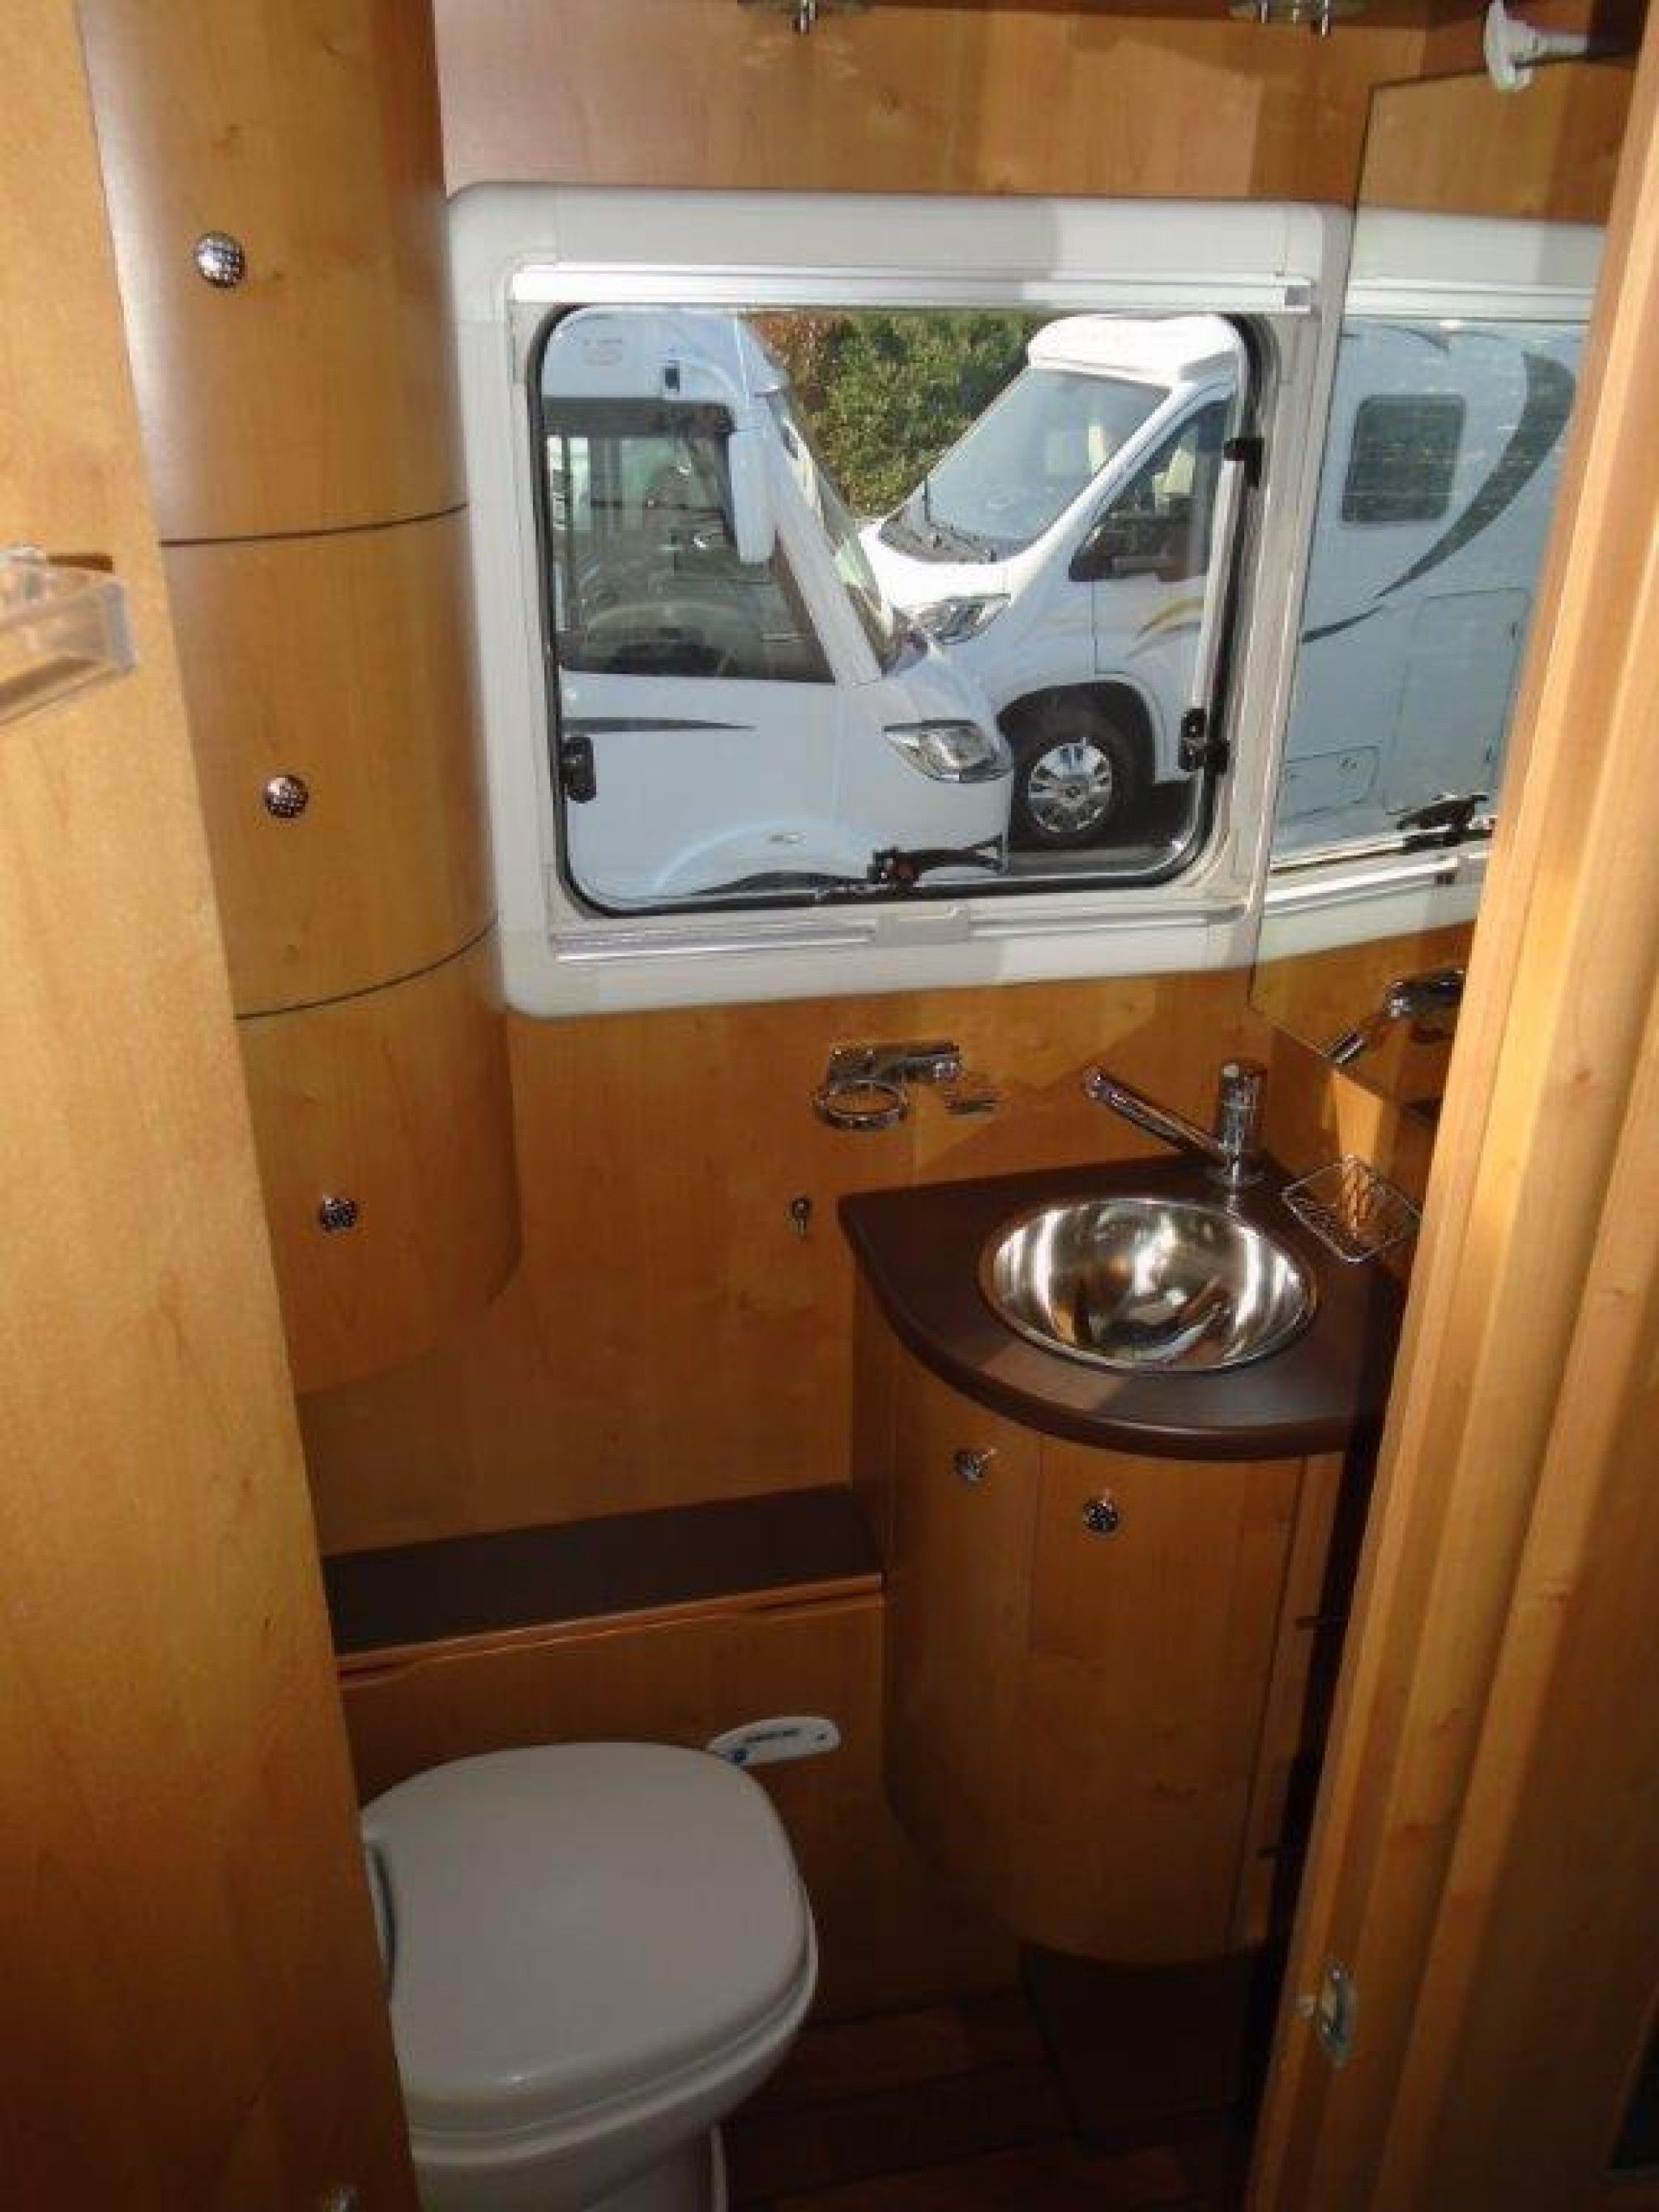 rapido 9048 df occasion de 2007 fiat camping car en vente reze loire atlantique 44. Black Bedroom Furniture Sets. Home Design Ideas